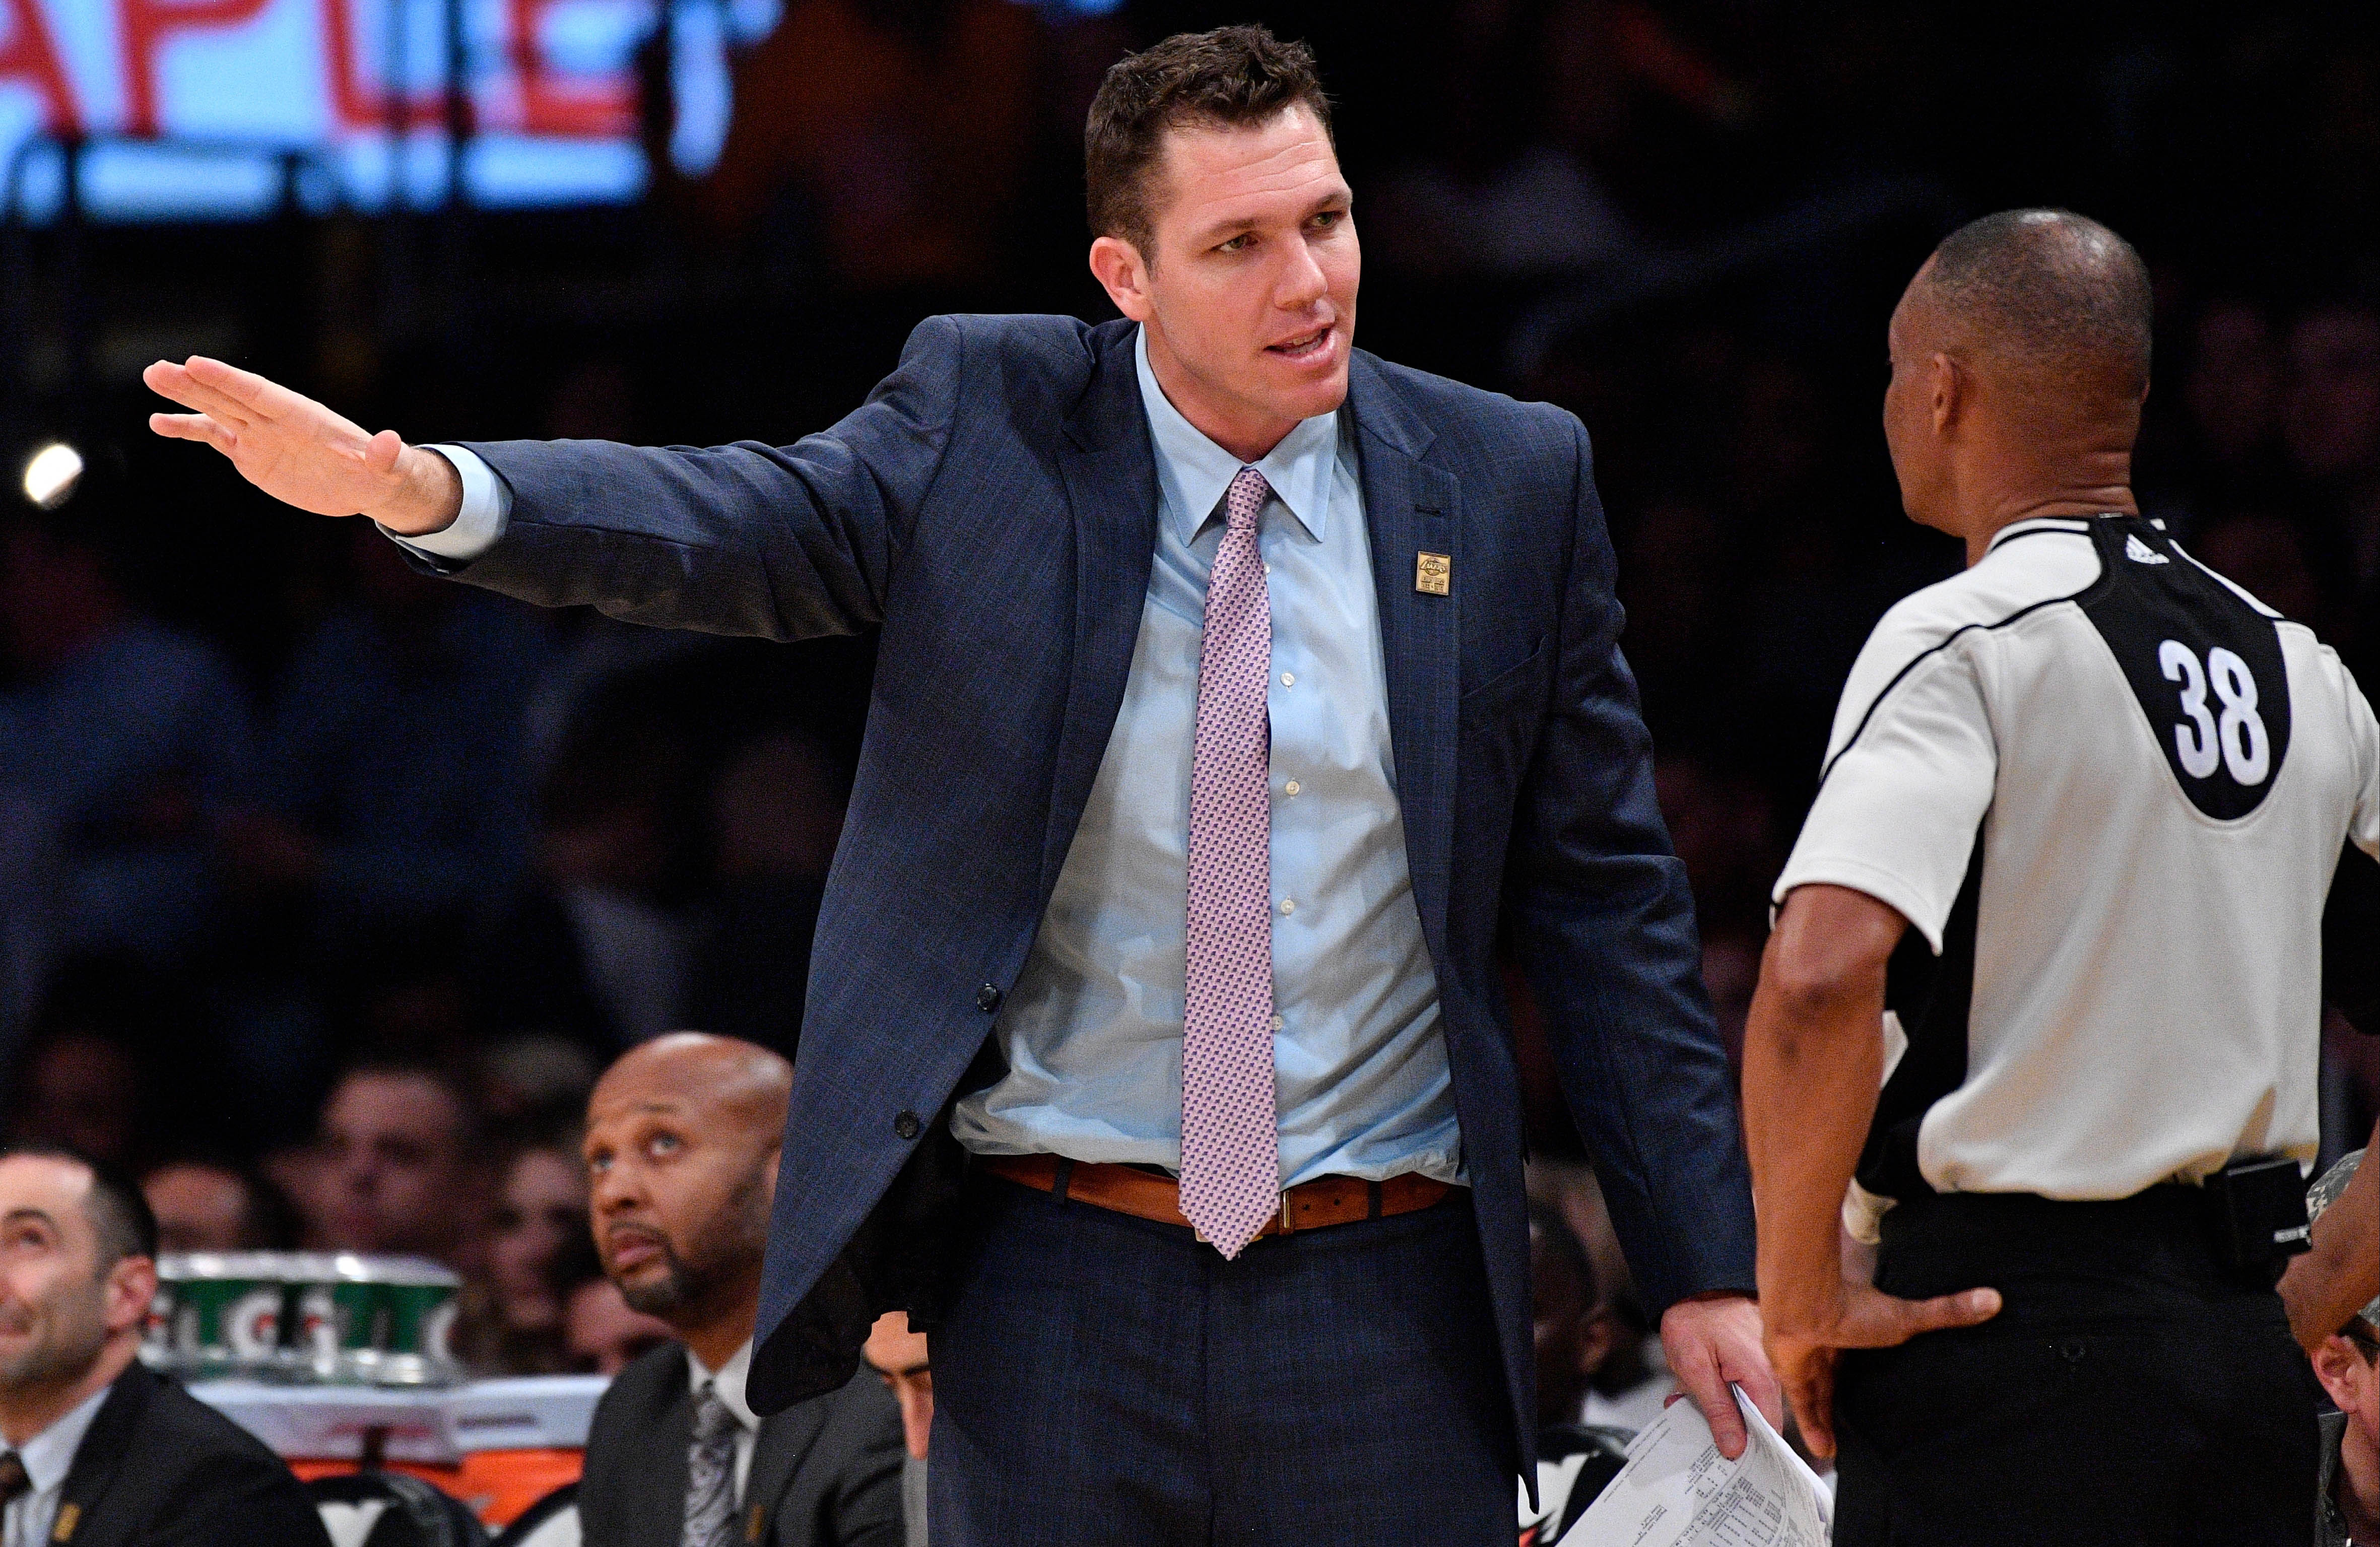 Jan 31, 2017; Los Angeles, CA, USA; Los Angeles Lakers head coach Luke Walton argues a foul call during the second half against the Denver Nuggets at Staples Center. Mandatory Credit: Robert Hanashiro-USA TODAY Sports